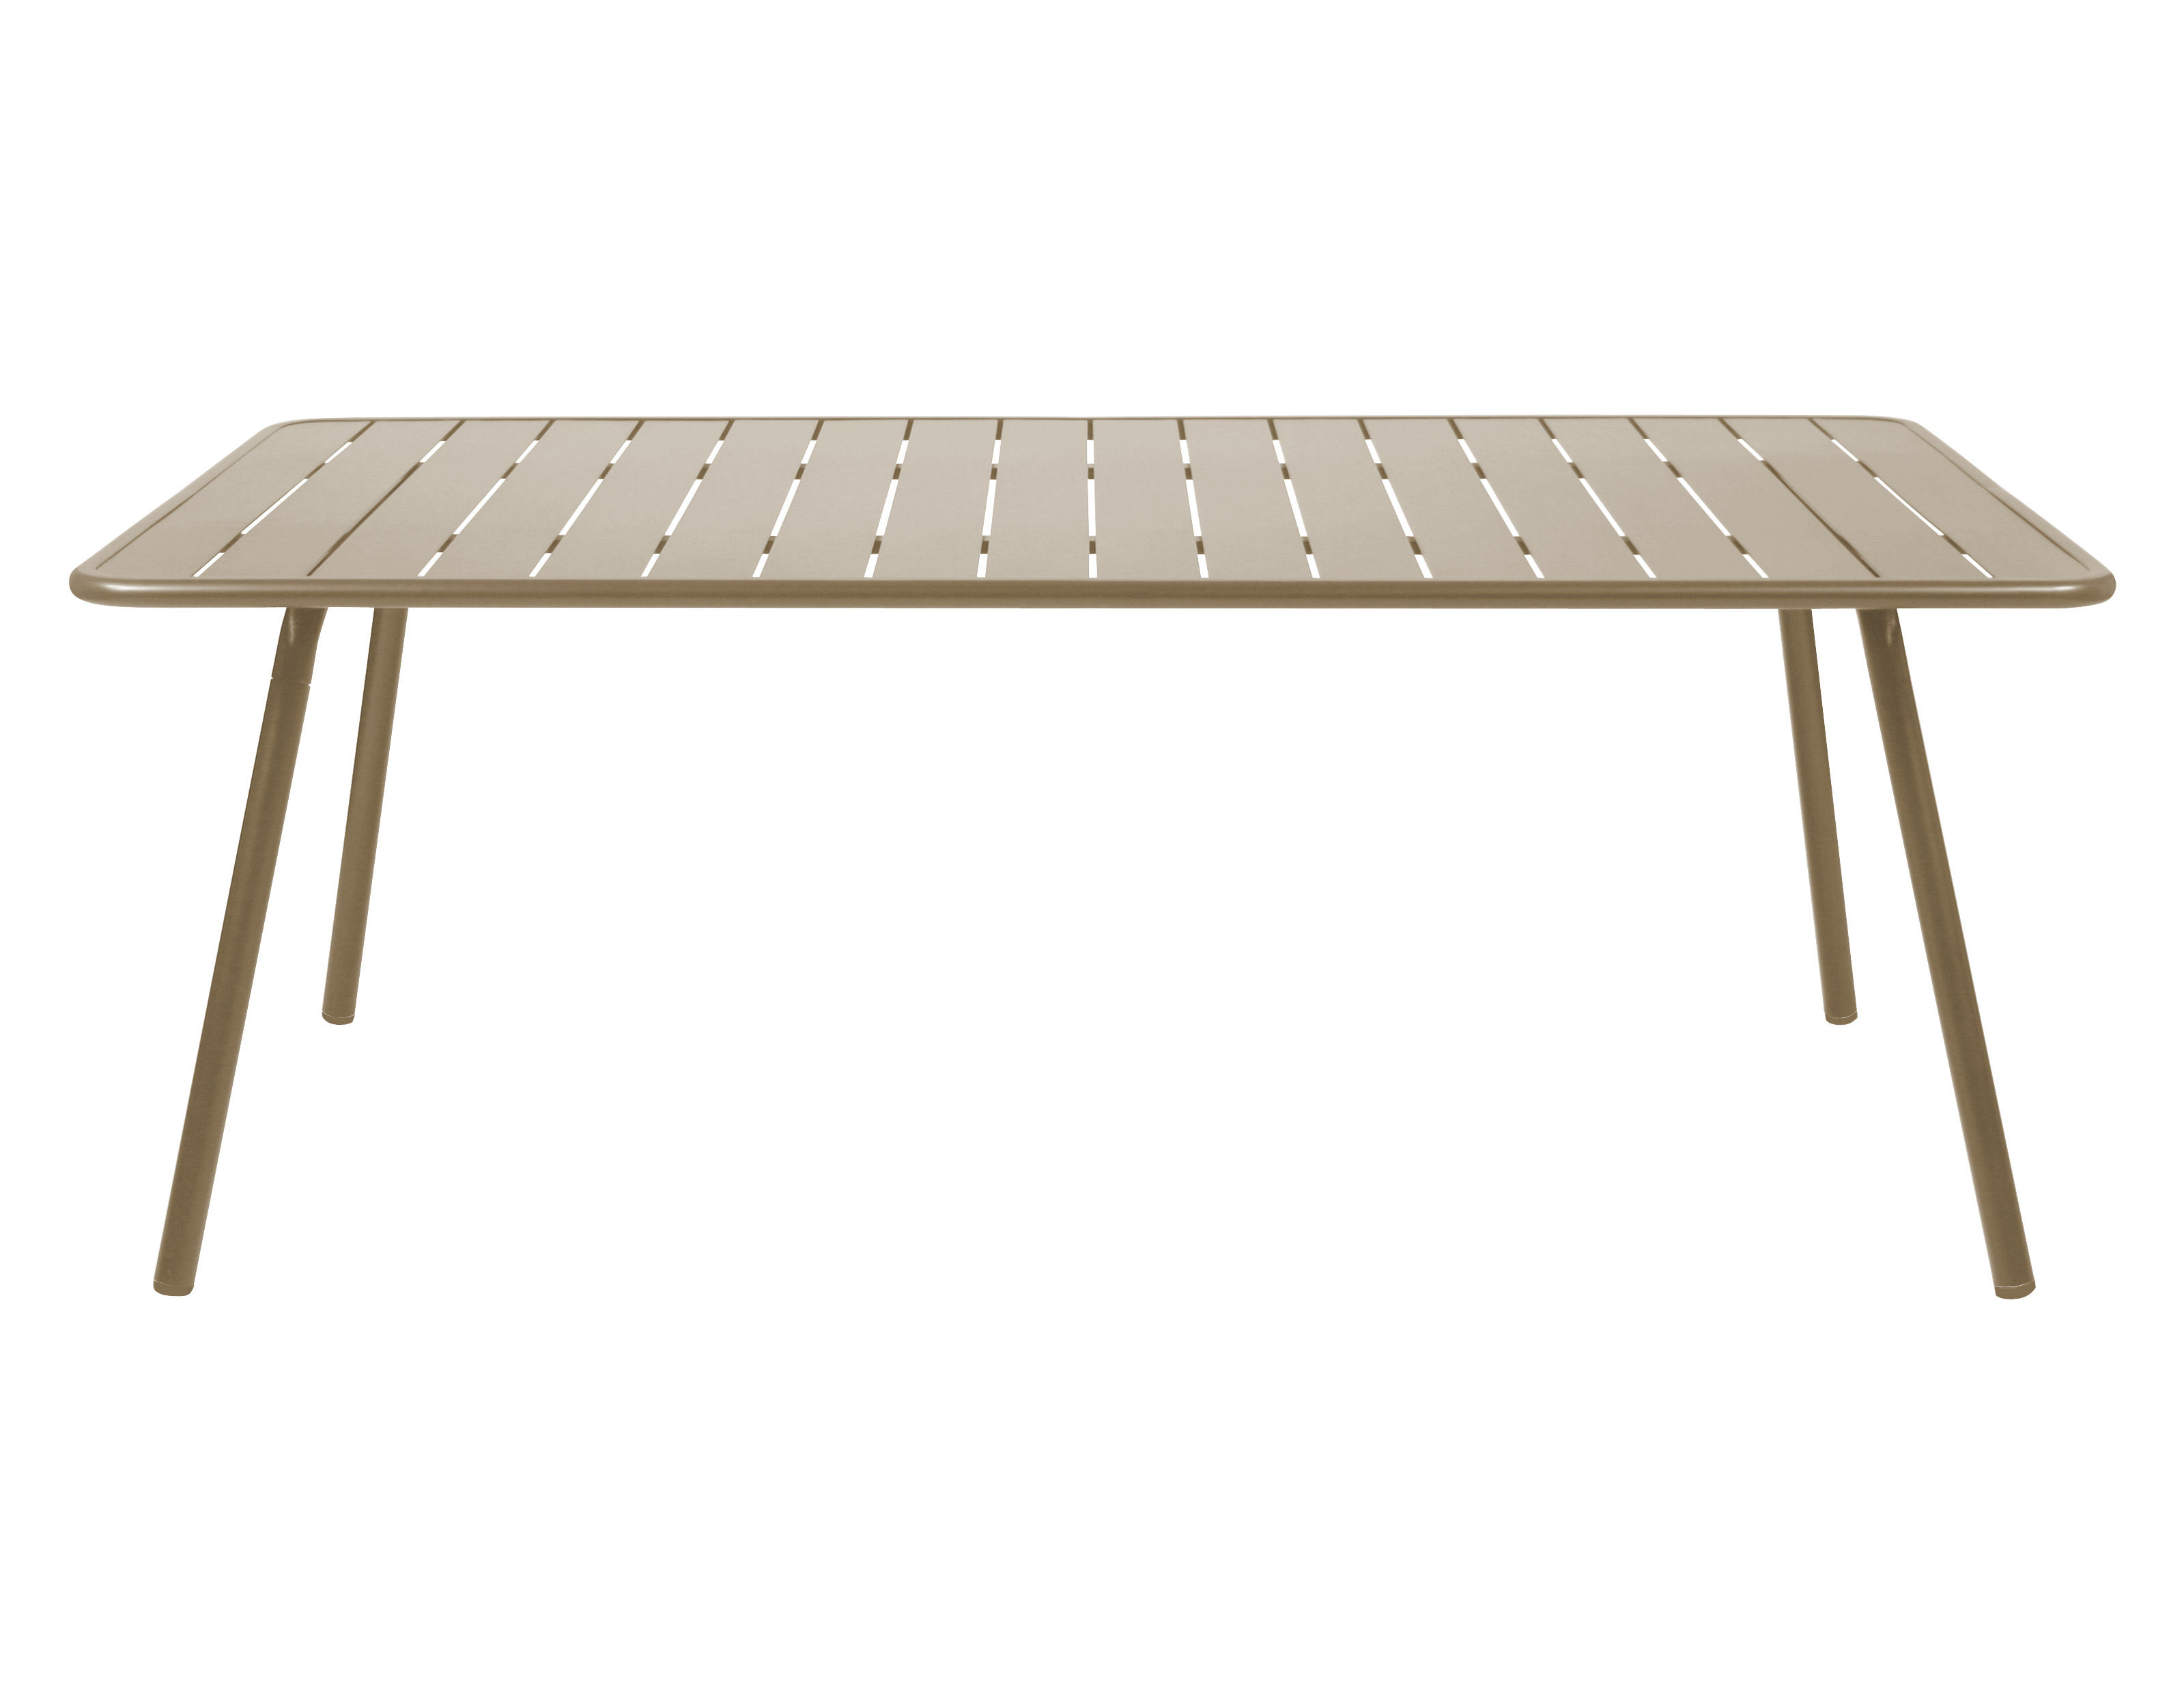 Outdoor - Garden Tables - Luxembourg Rectangular table - rectangular - 8 persons - L 207 cm by Fermob - Nutmeg - Lacquered aluminium